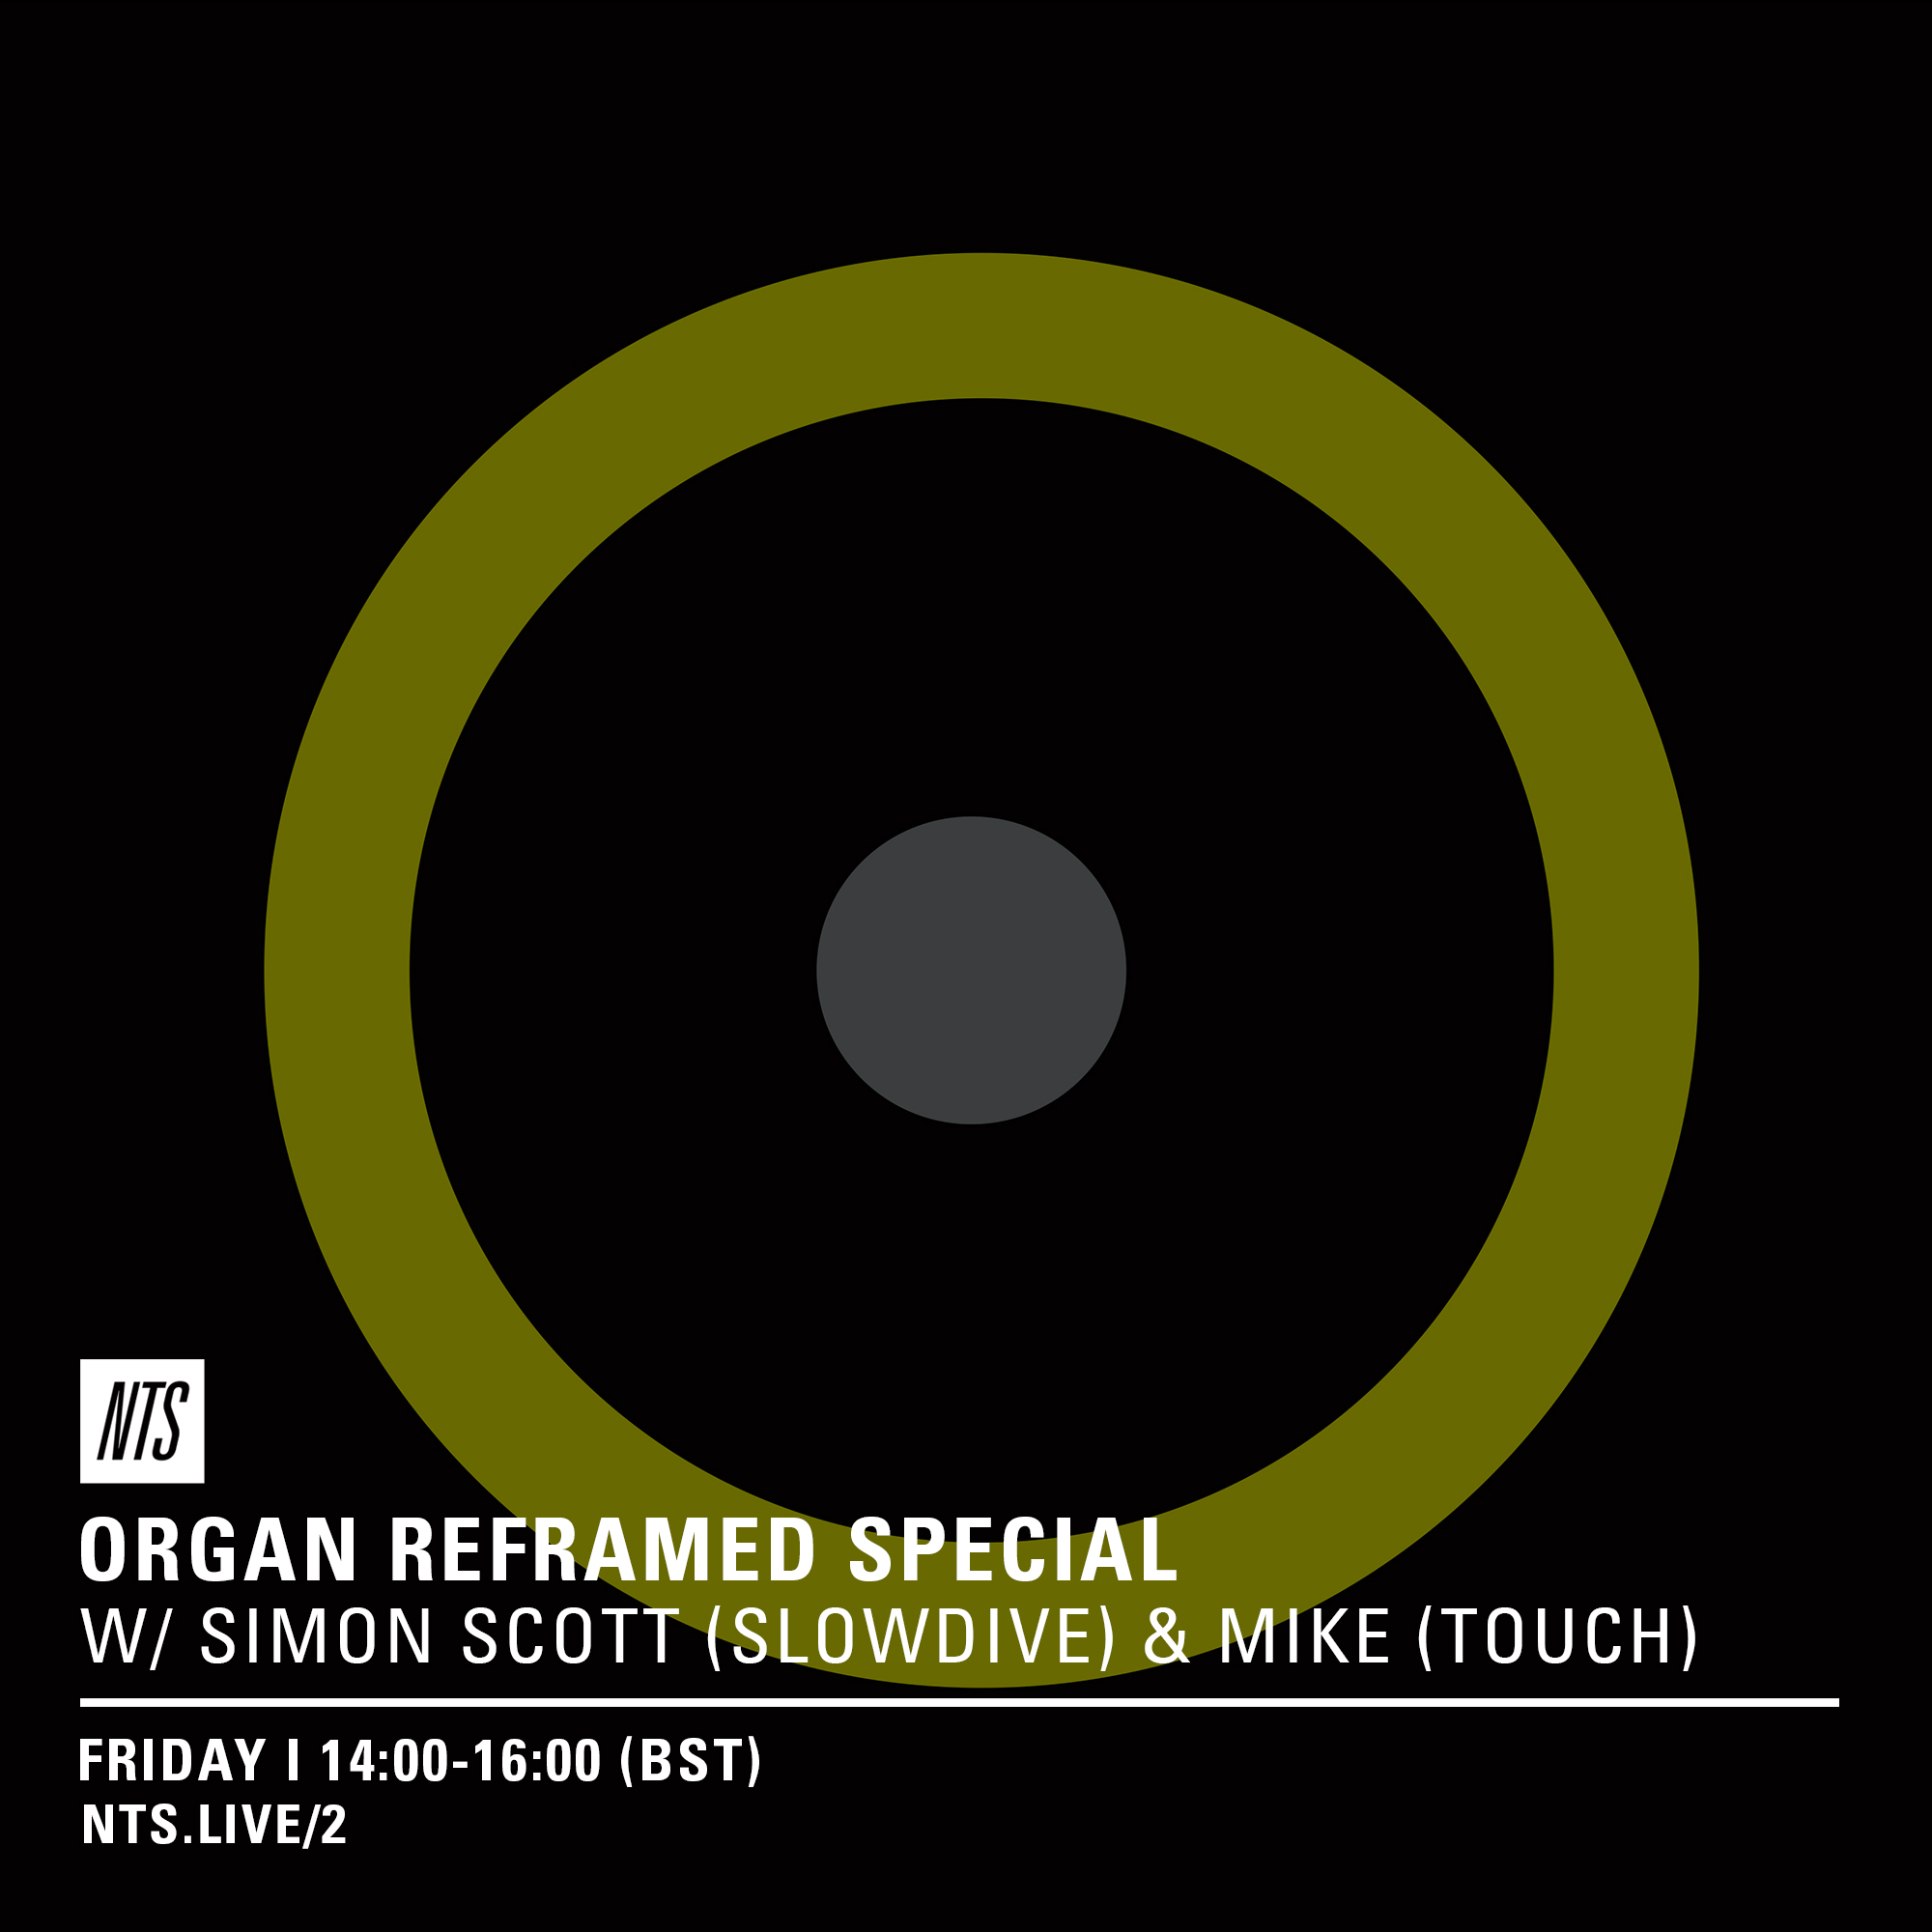 organ-reframed-art1